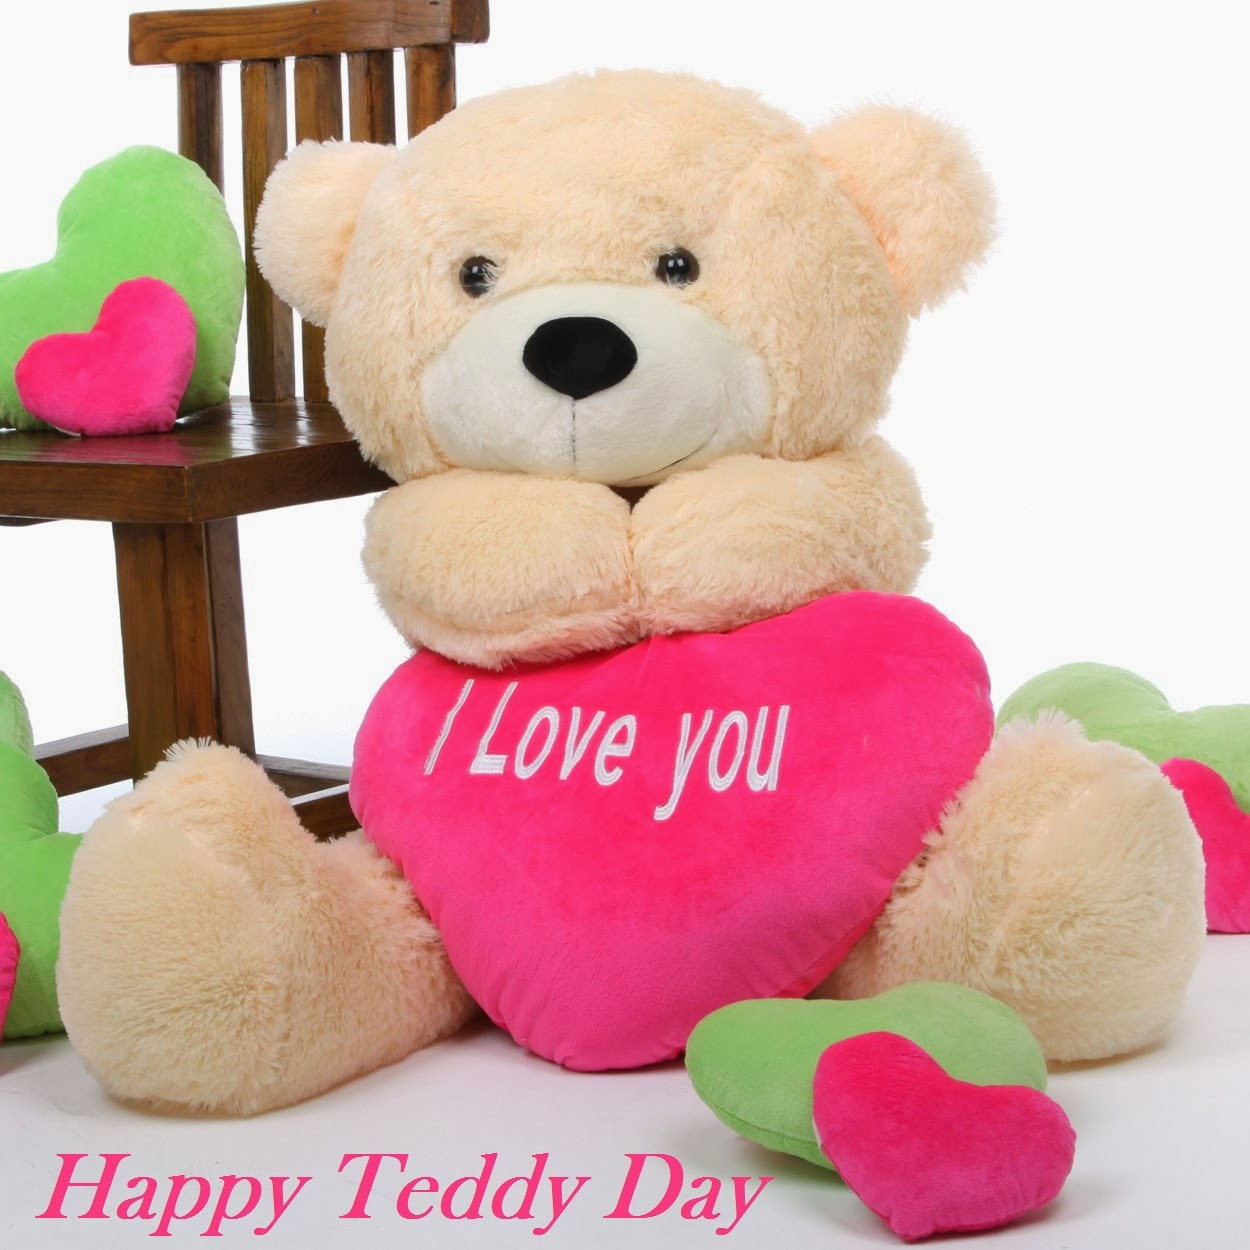 happy-teddy-day-2014-hd-wallpapers-and-images-lovely-teddy